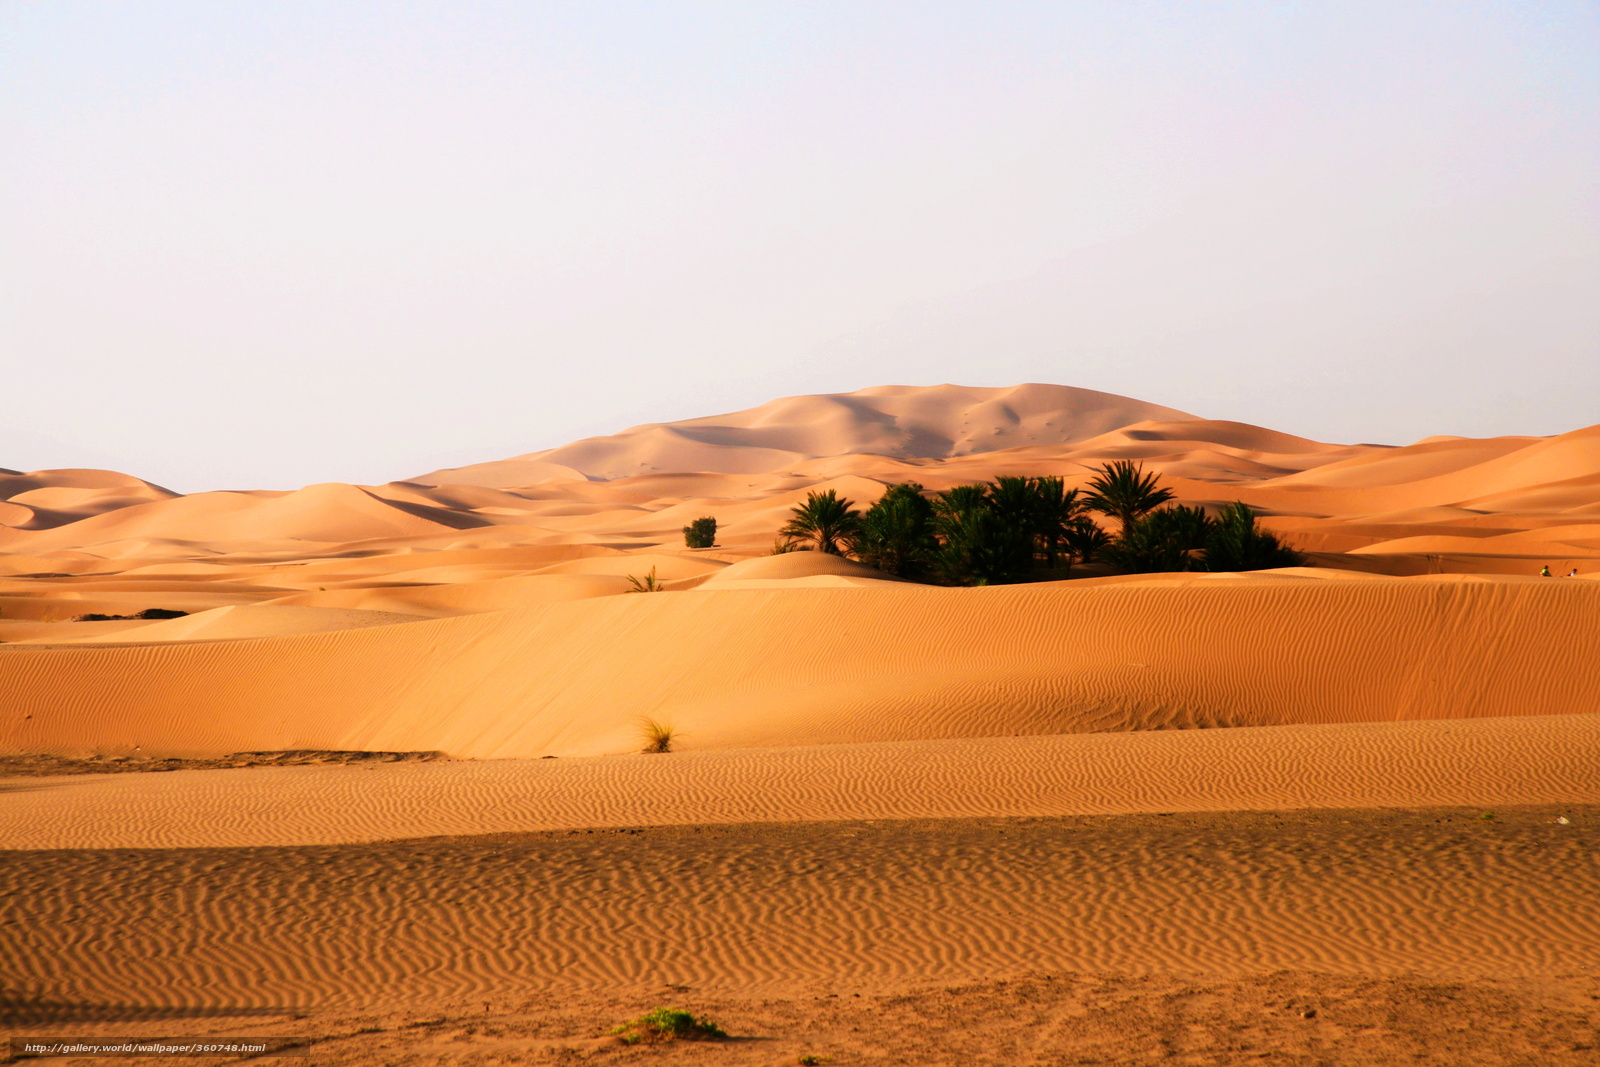 oasis landscape wallpapers archives - photo #12